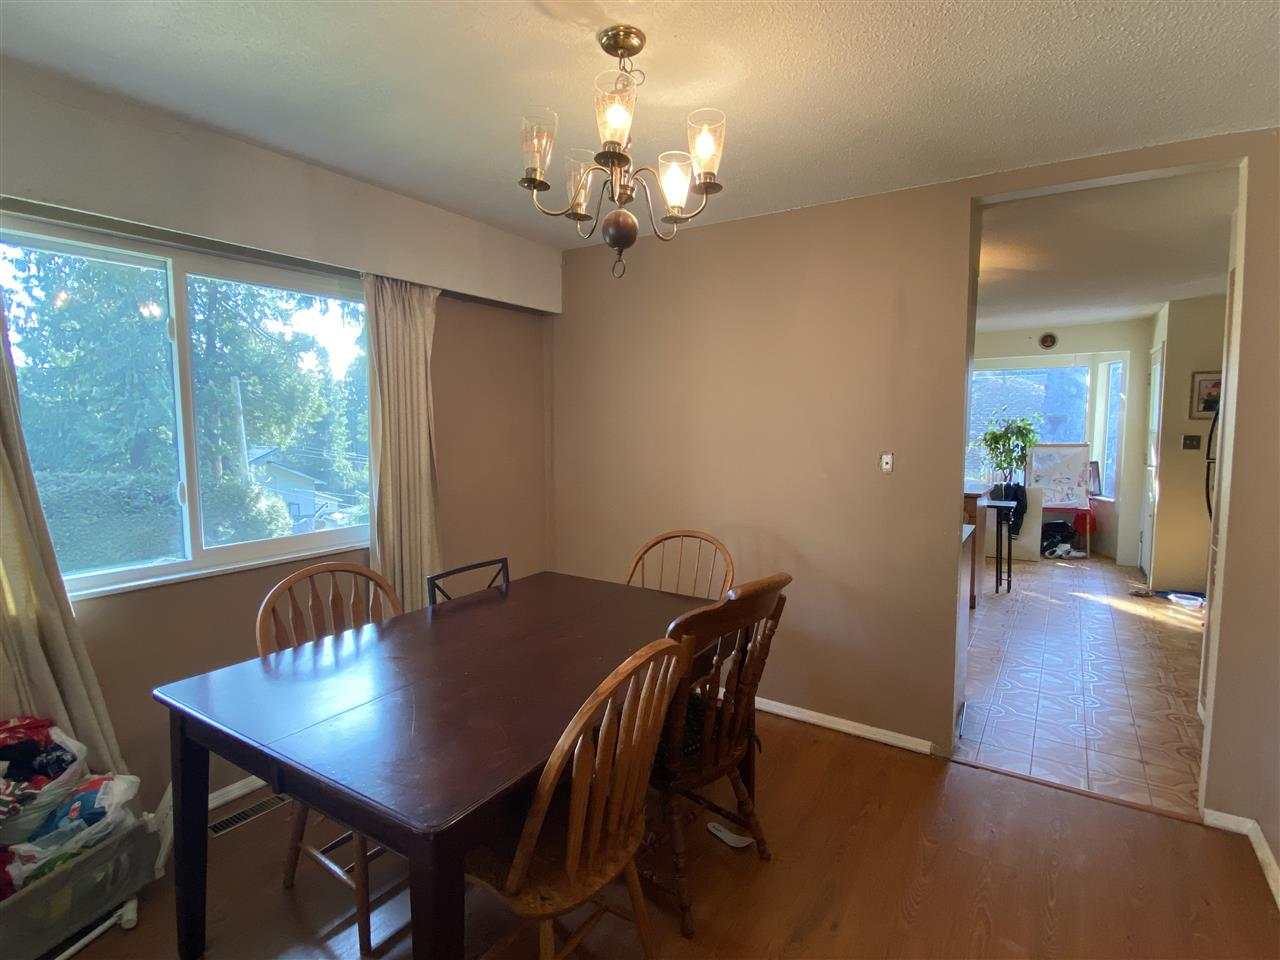 962 FREDERICK PLACE - Lynn Valley House/Single Family for sale, 4 Bedrooms (R2541307) - #10